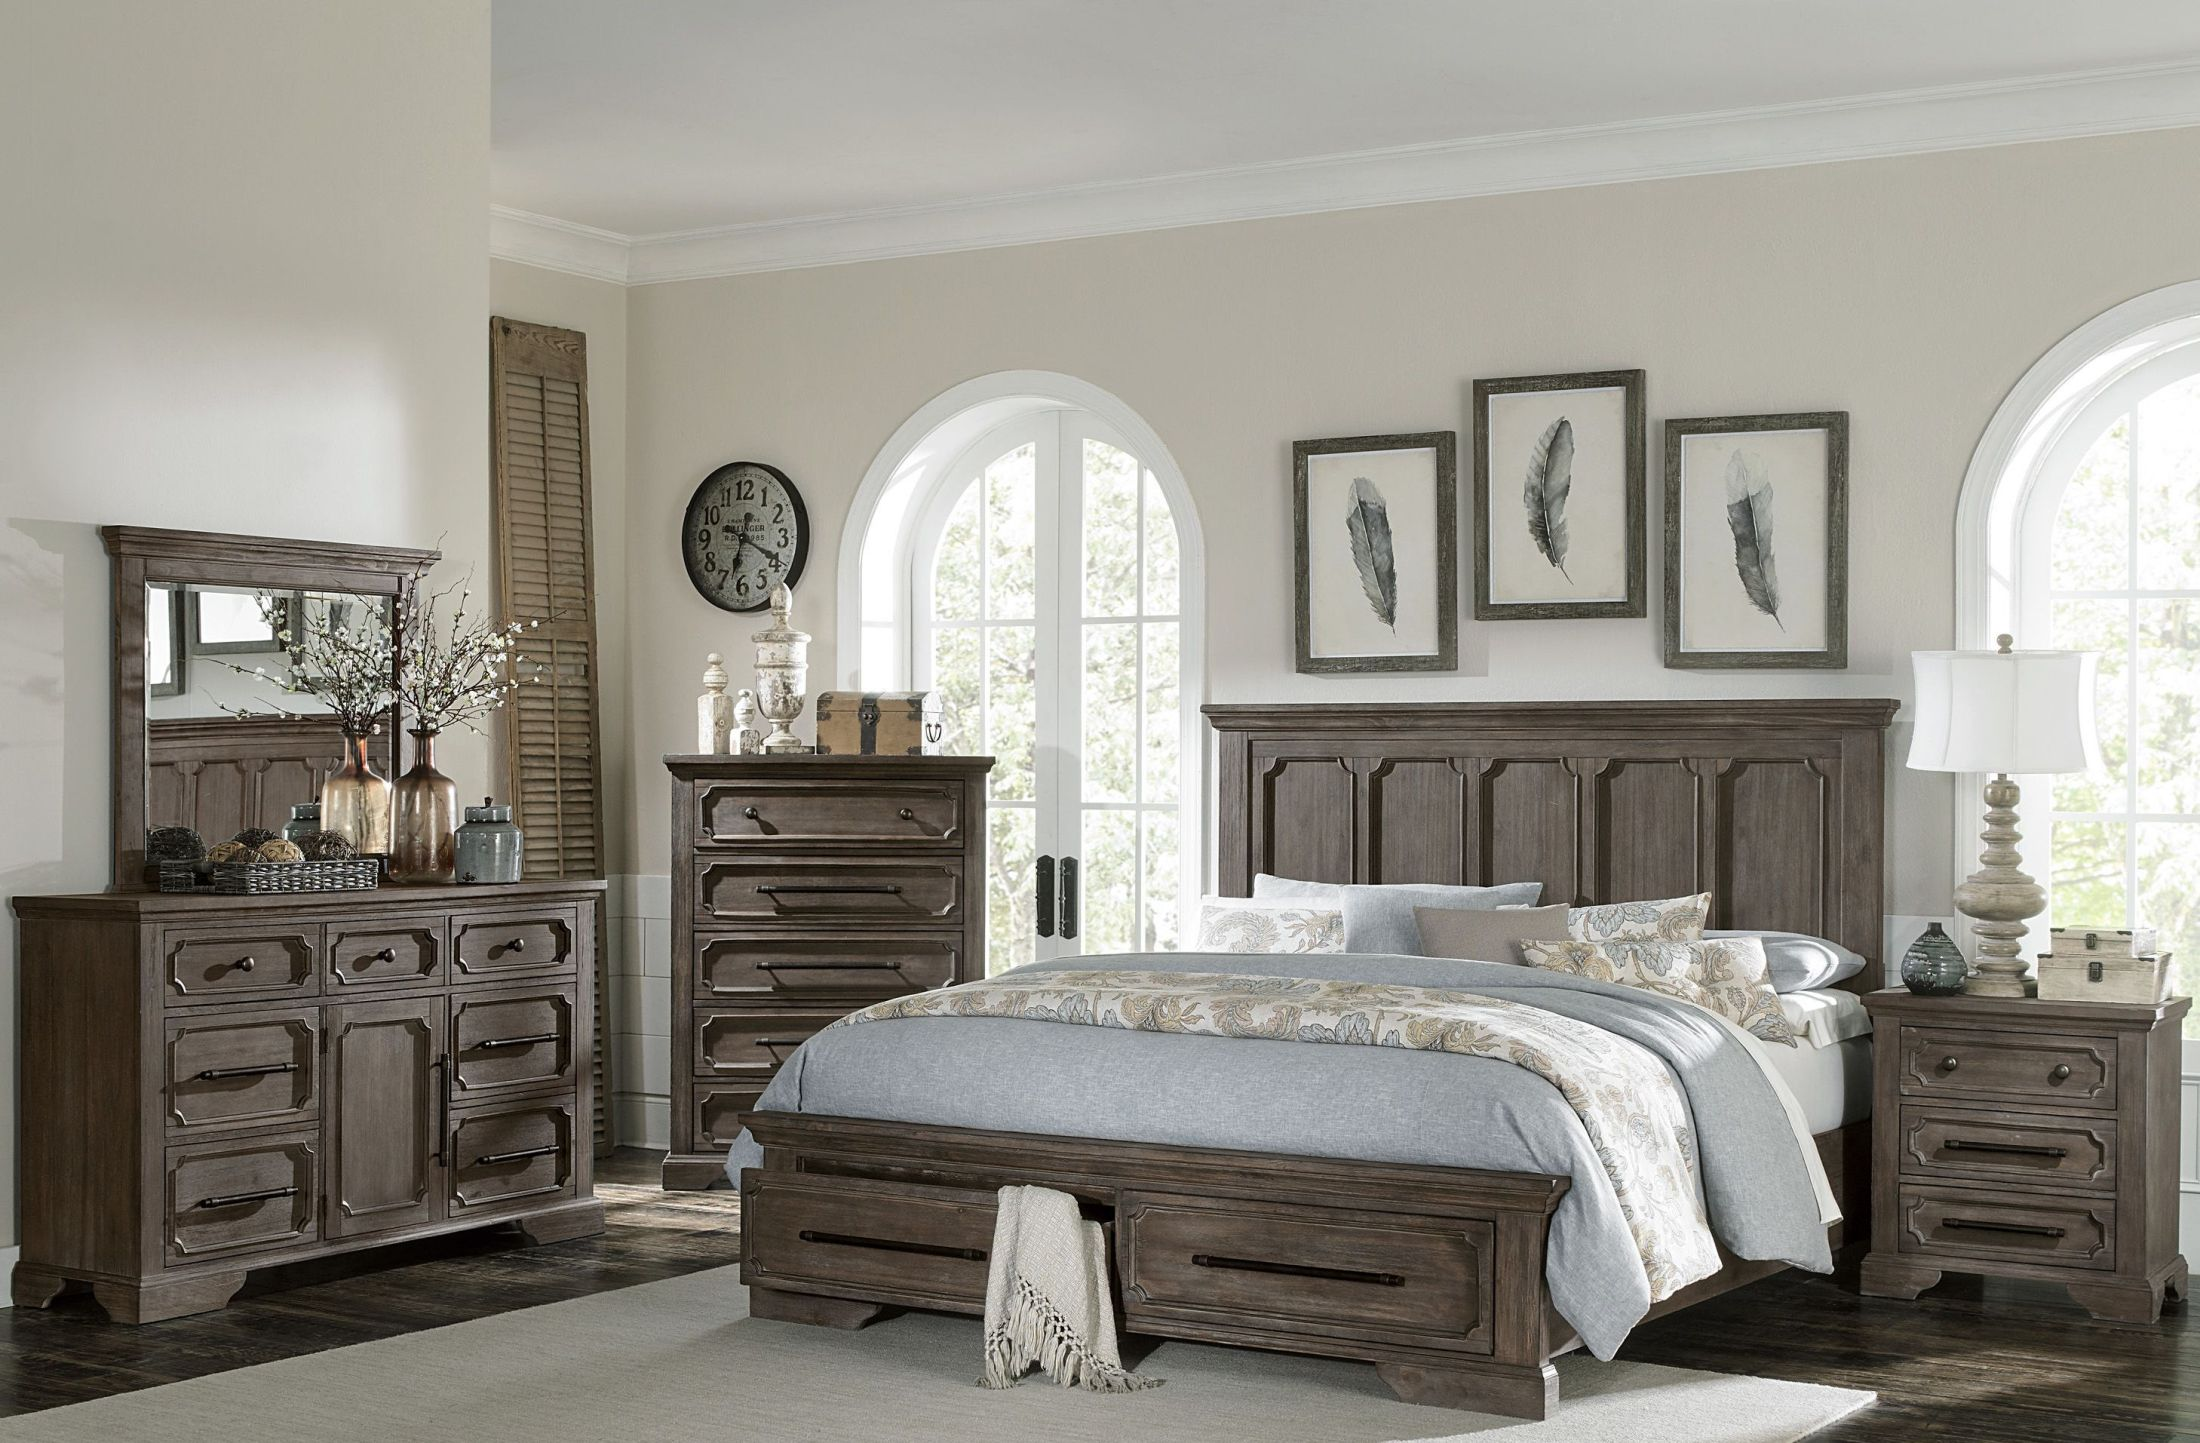 homelegance toulon unique rustic storage bedroom set. Black Bedroom Furniture Sets. Home Design Ideas